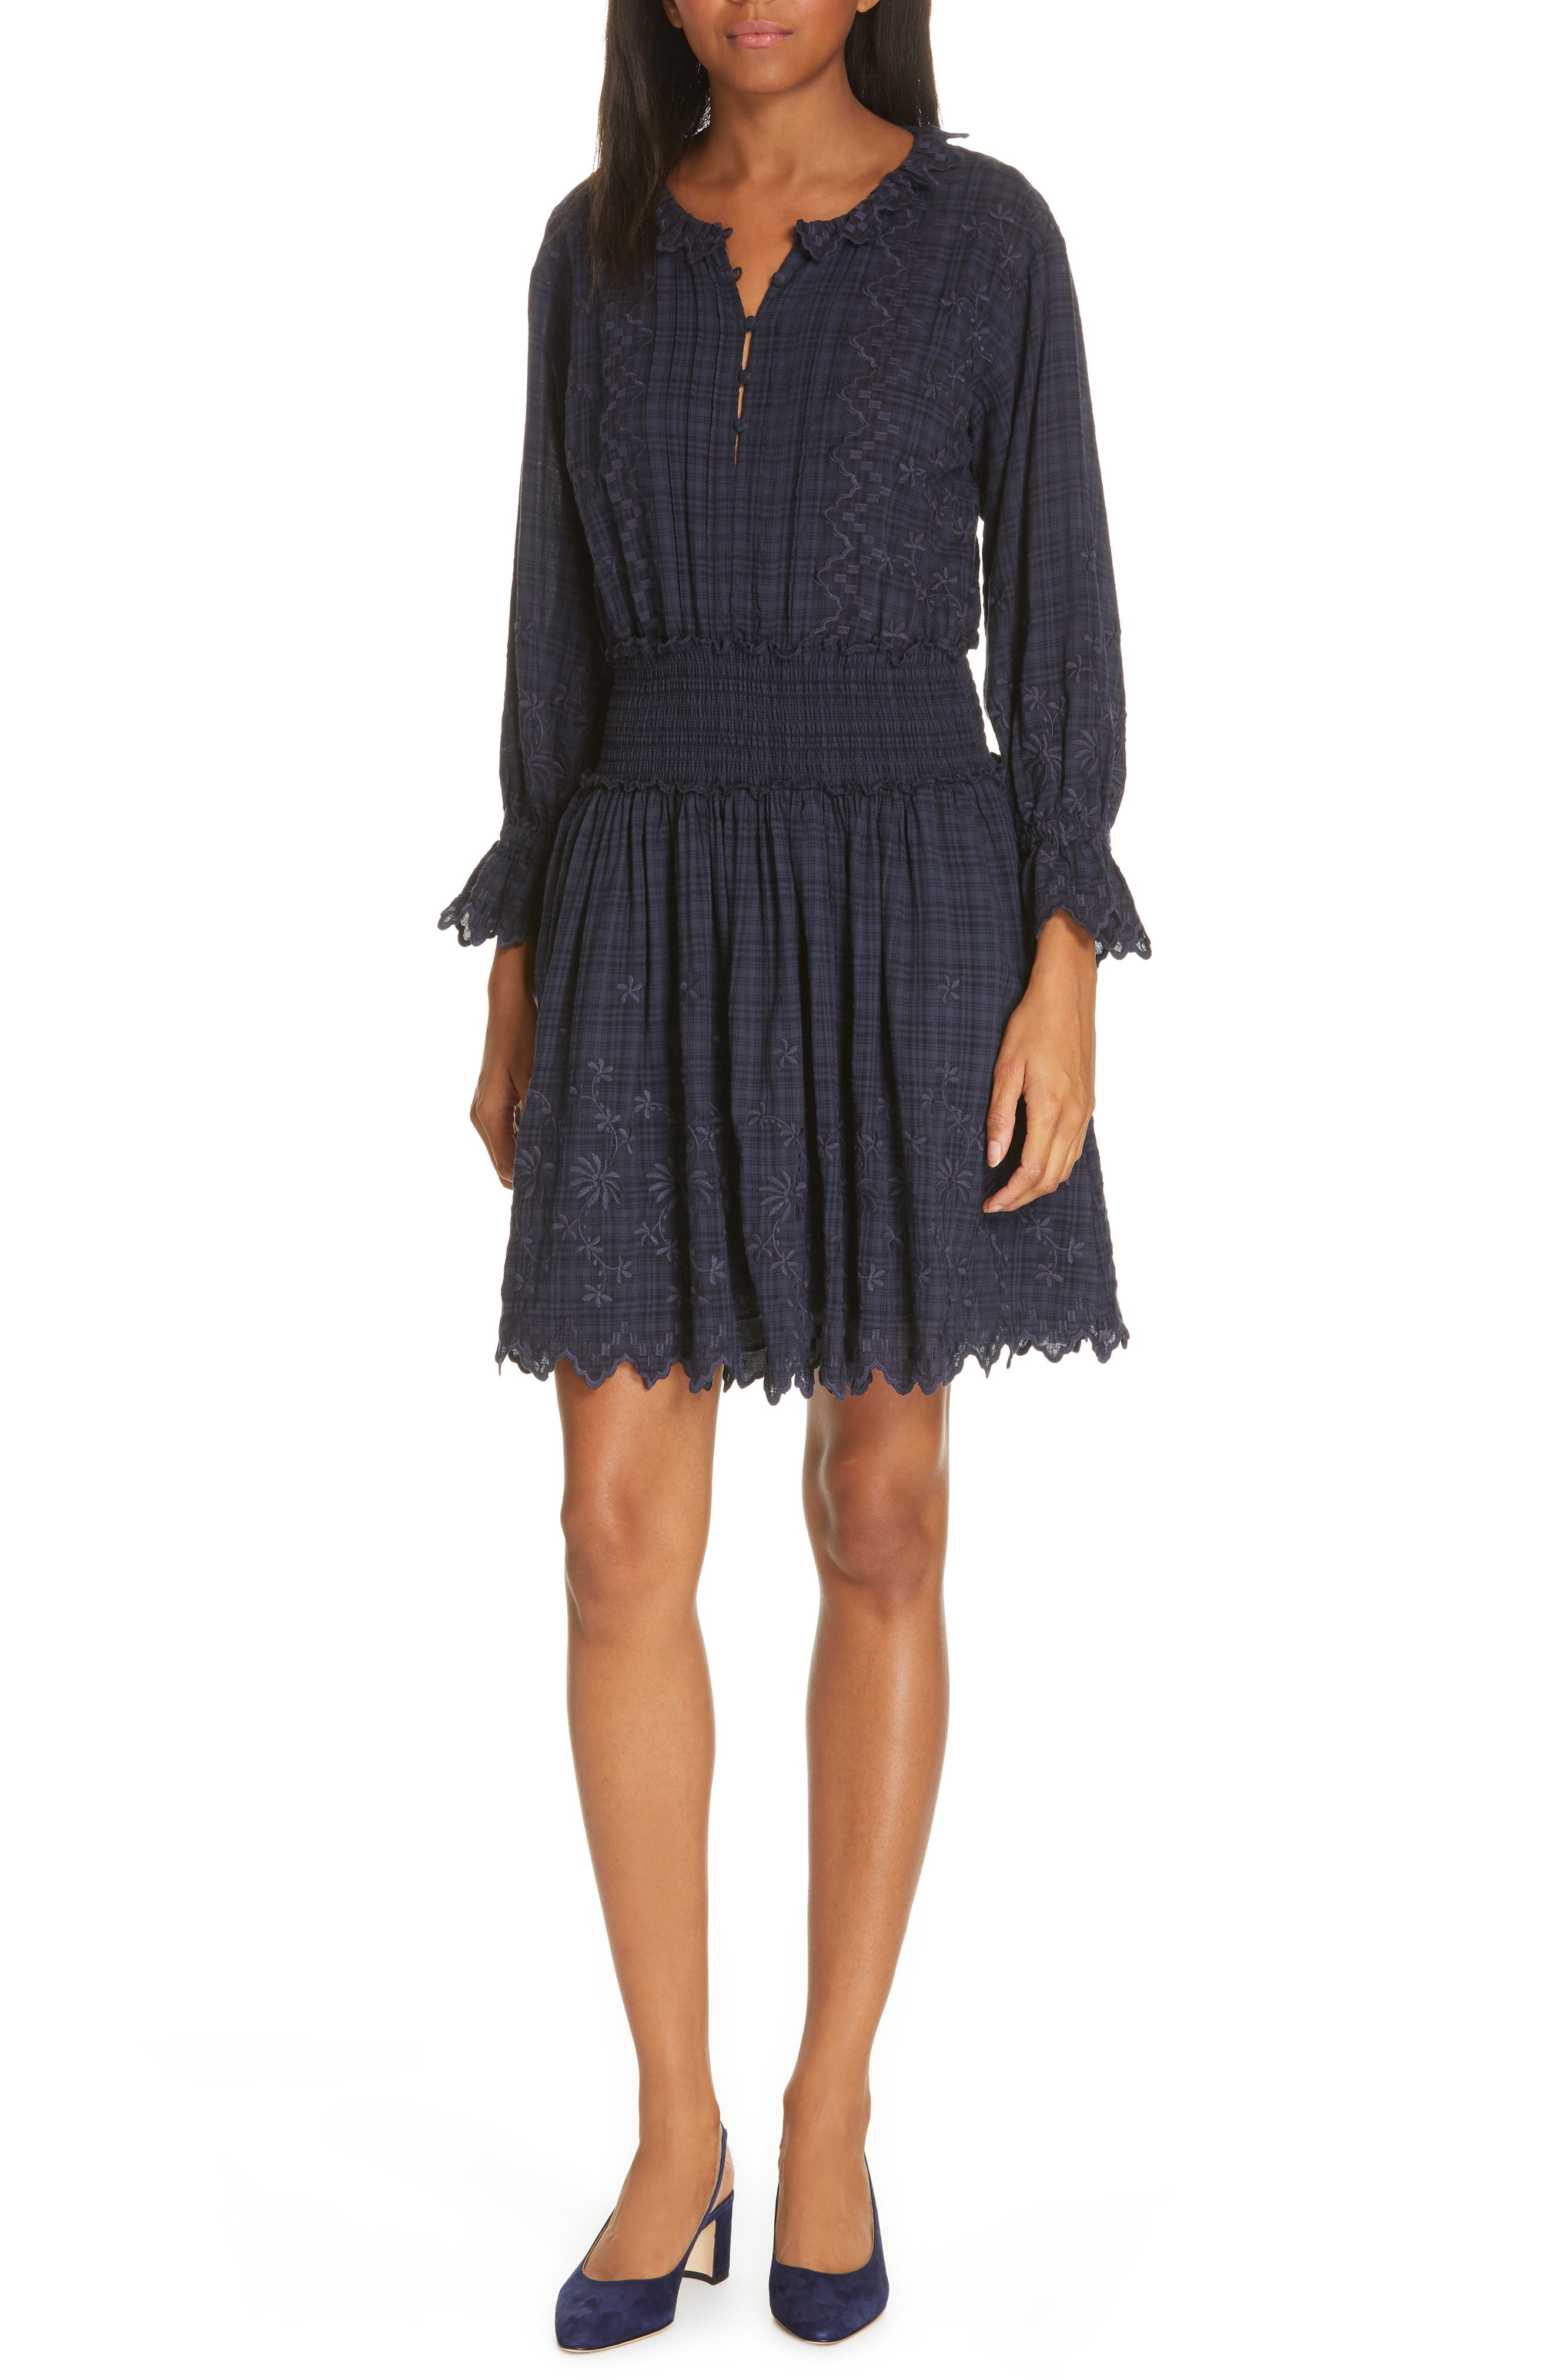 La Vie Rebecca Taylor Embroidered Check Print Dress, Blue